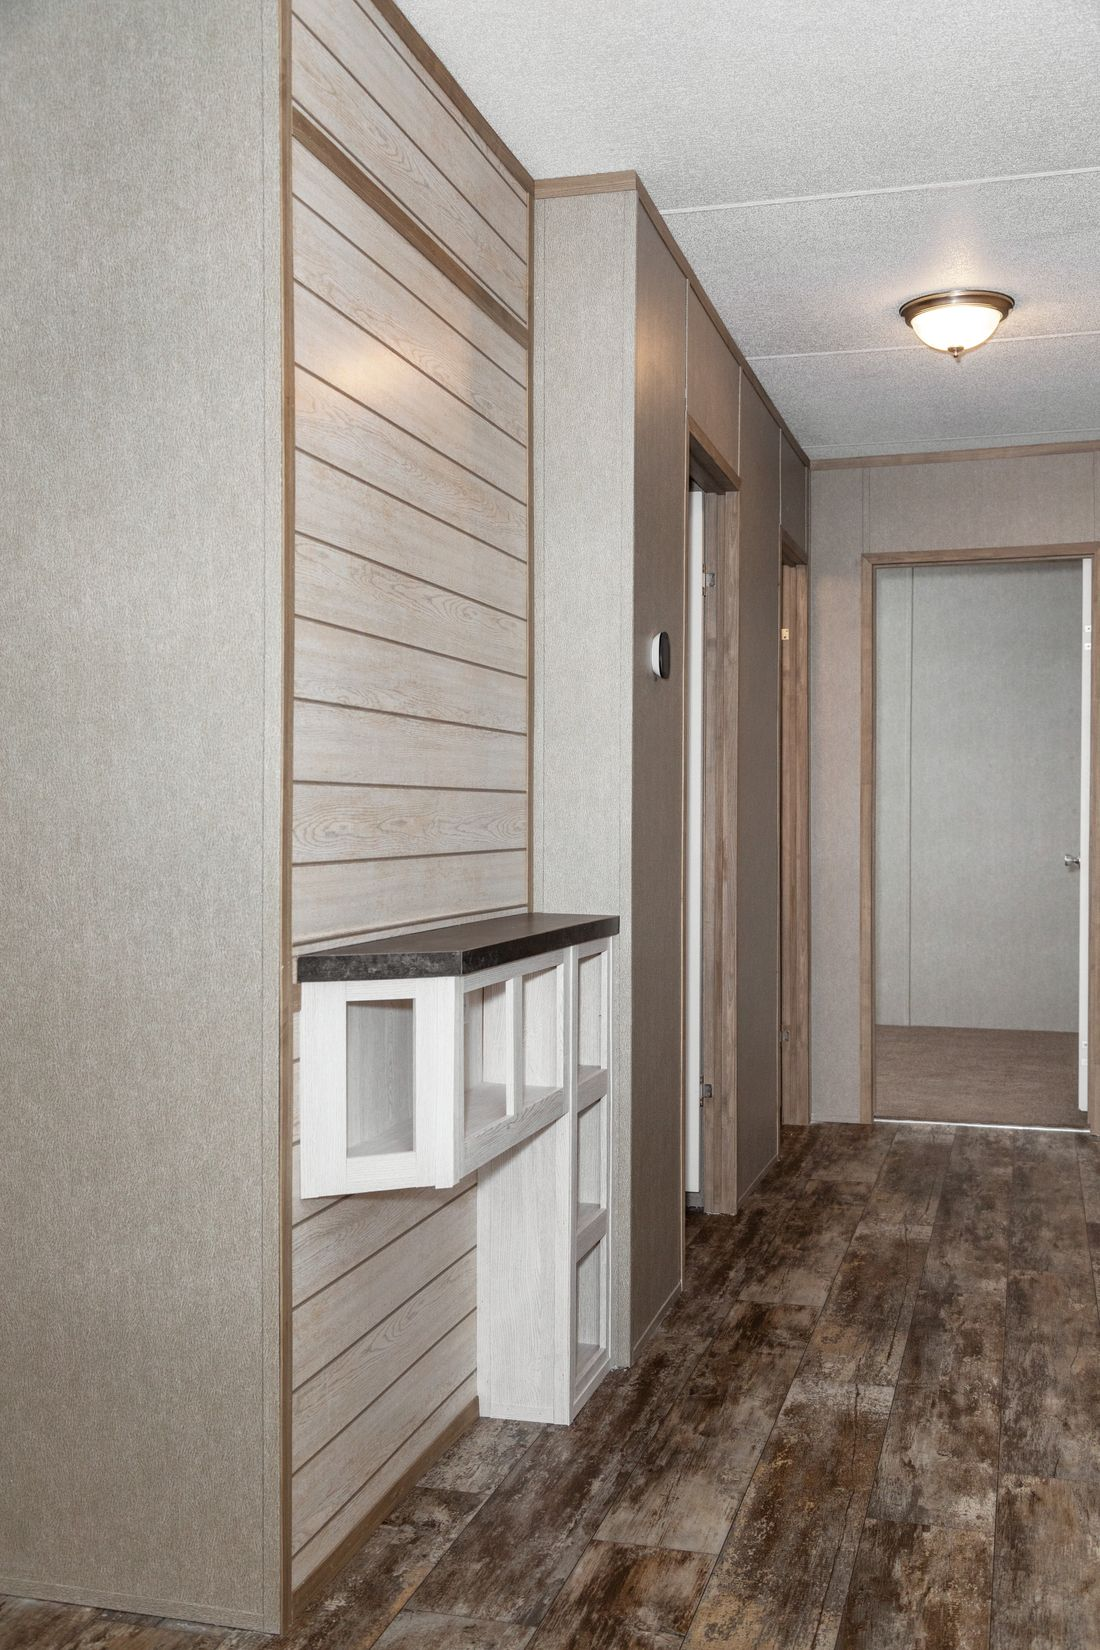 The RESOLUTION 16763X Foyer. This Manufactured Mobile Home features 3 bedrooms and 2 baths.